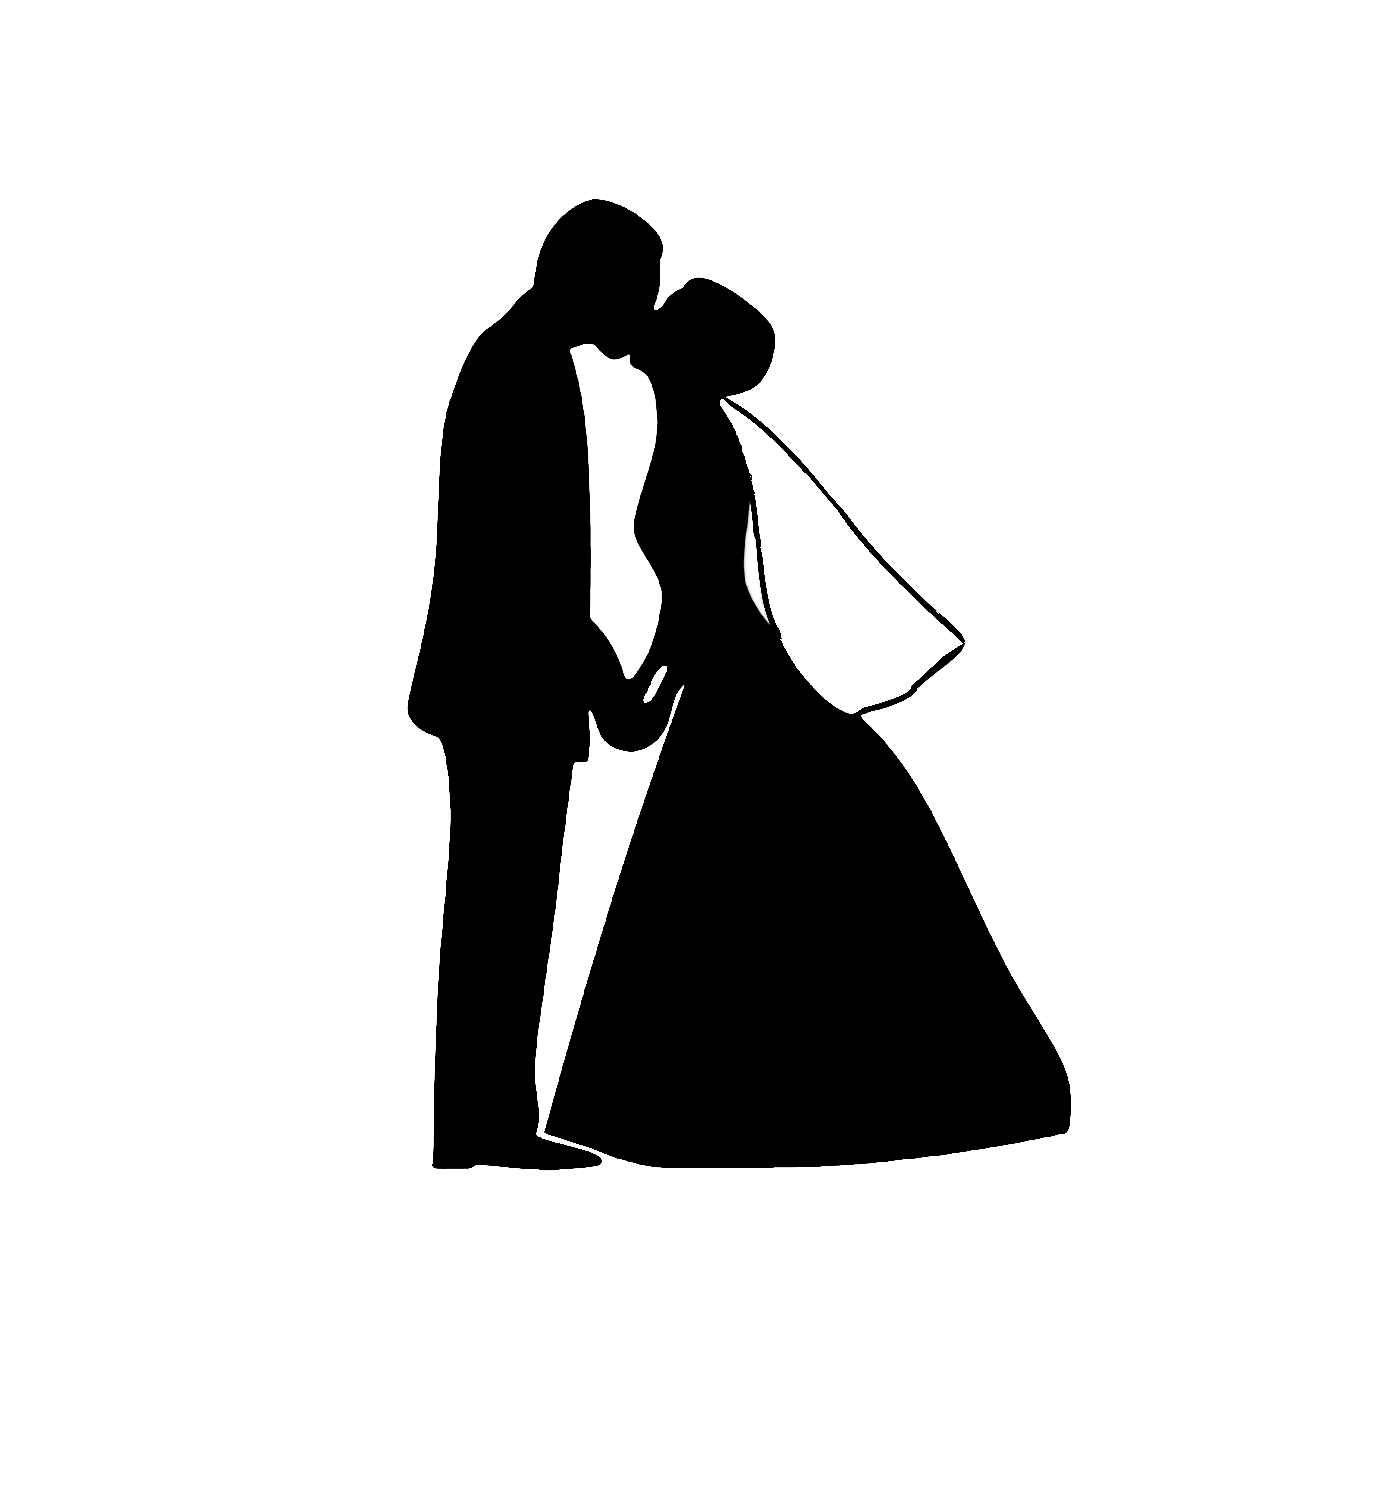 Bridal clipart marriage. We would like to